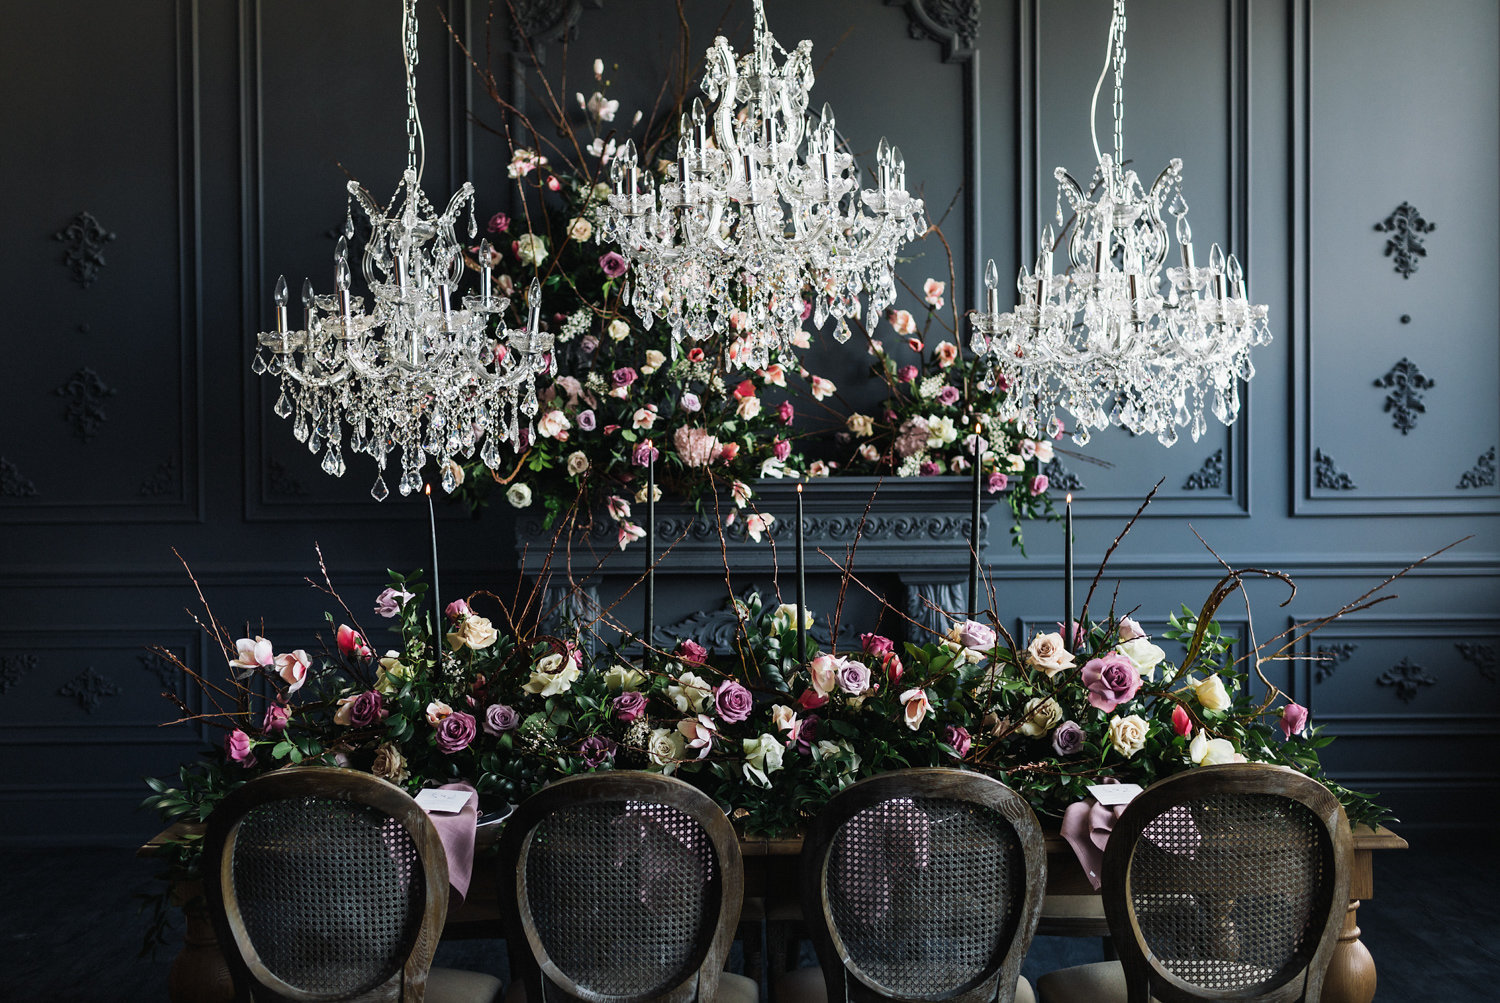 August In Bloom - Fairytale tablescape - Magnolia Dreams (The Bridal Affair)